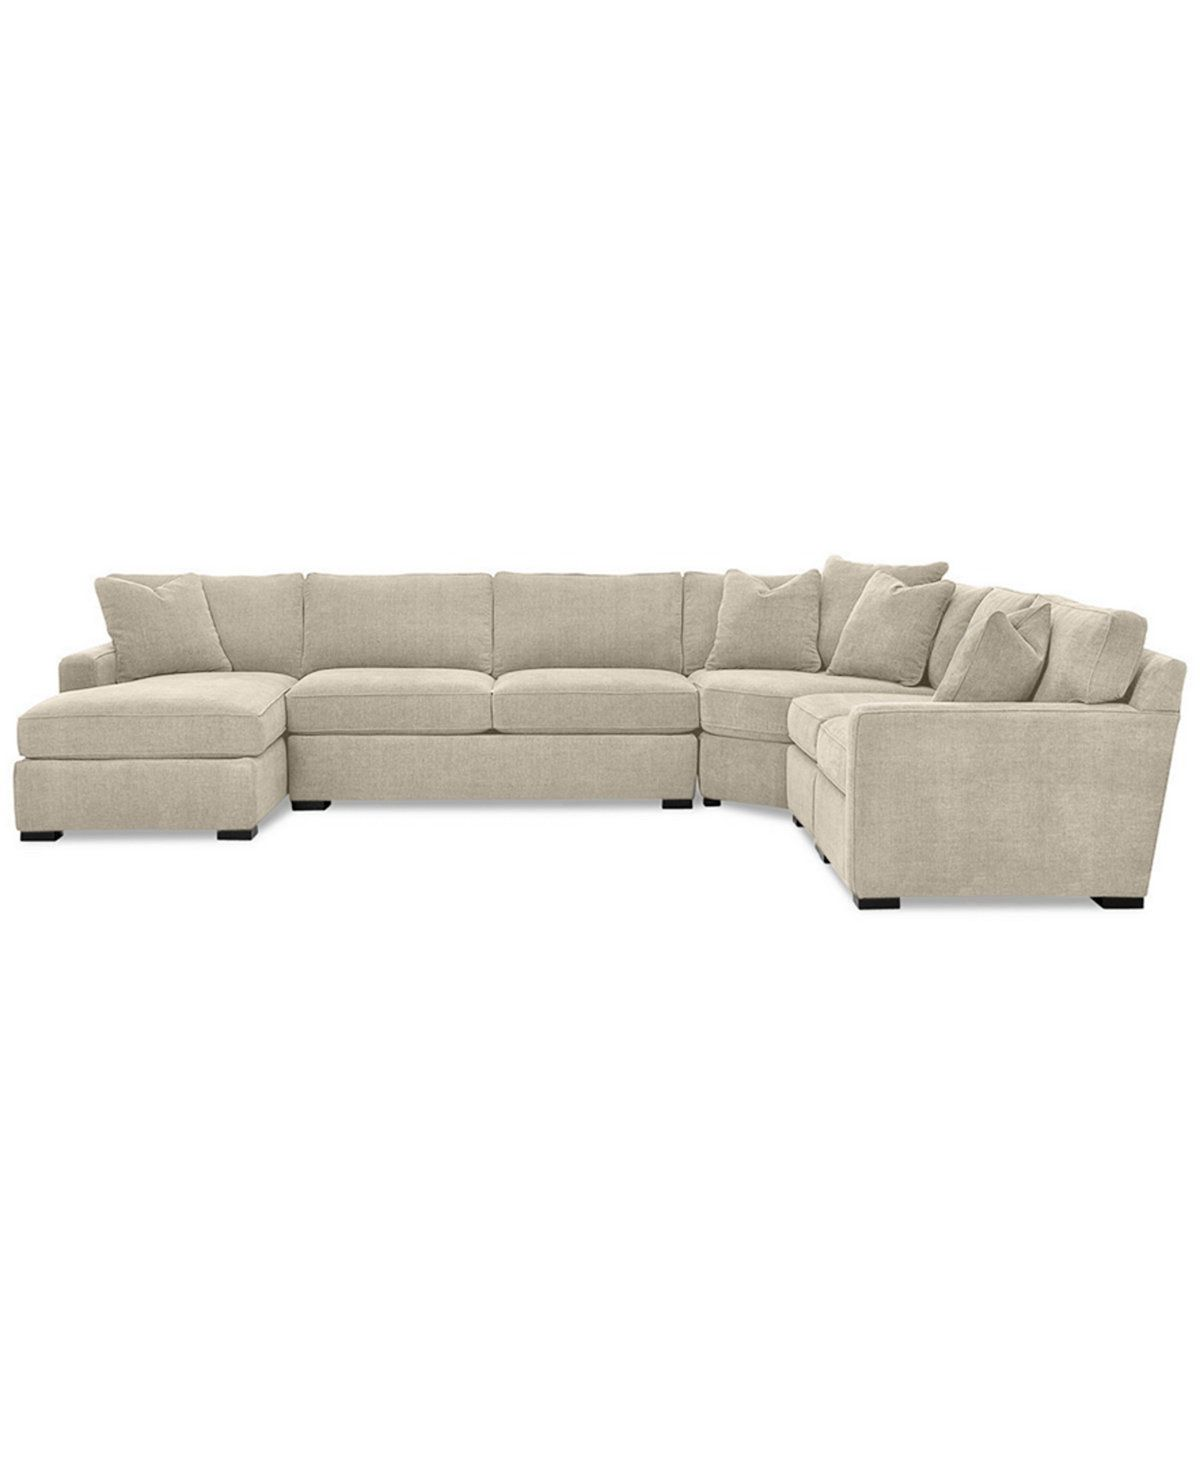 Best Furniture Radley 5 Piece Fabric Chaise Sectional Sofa 640 x 480